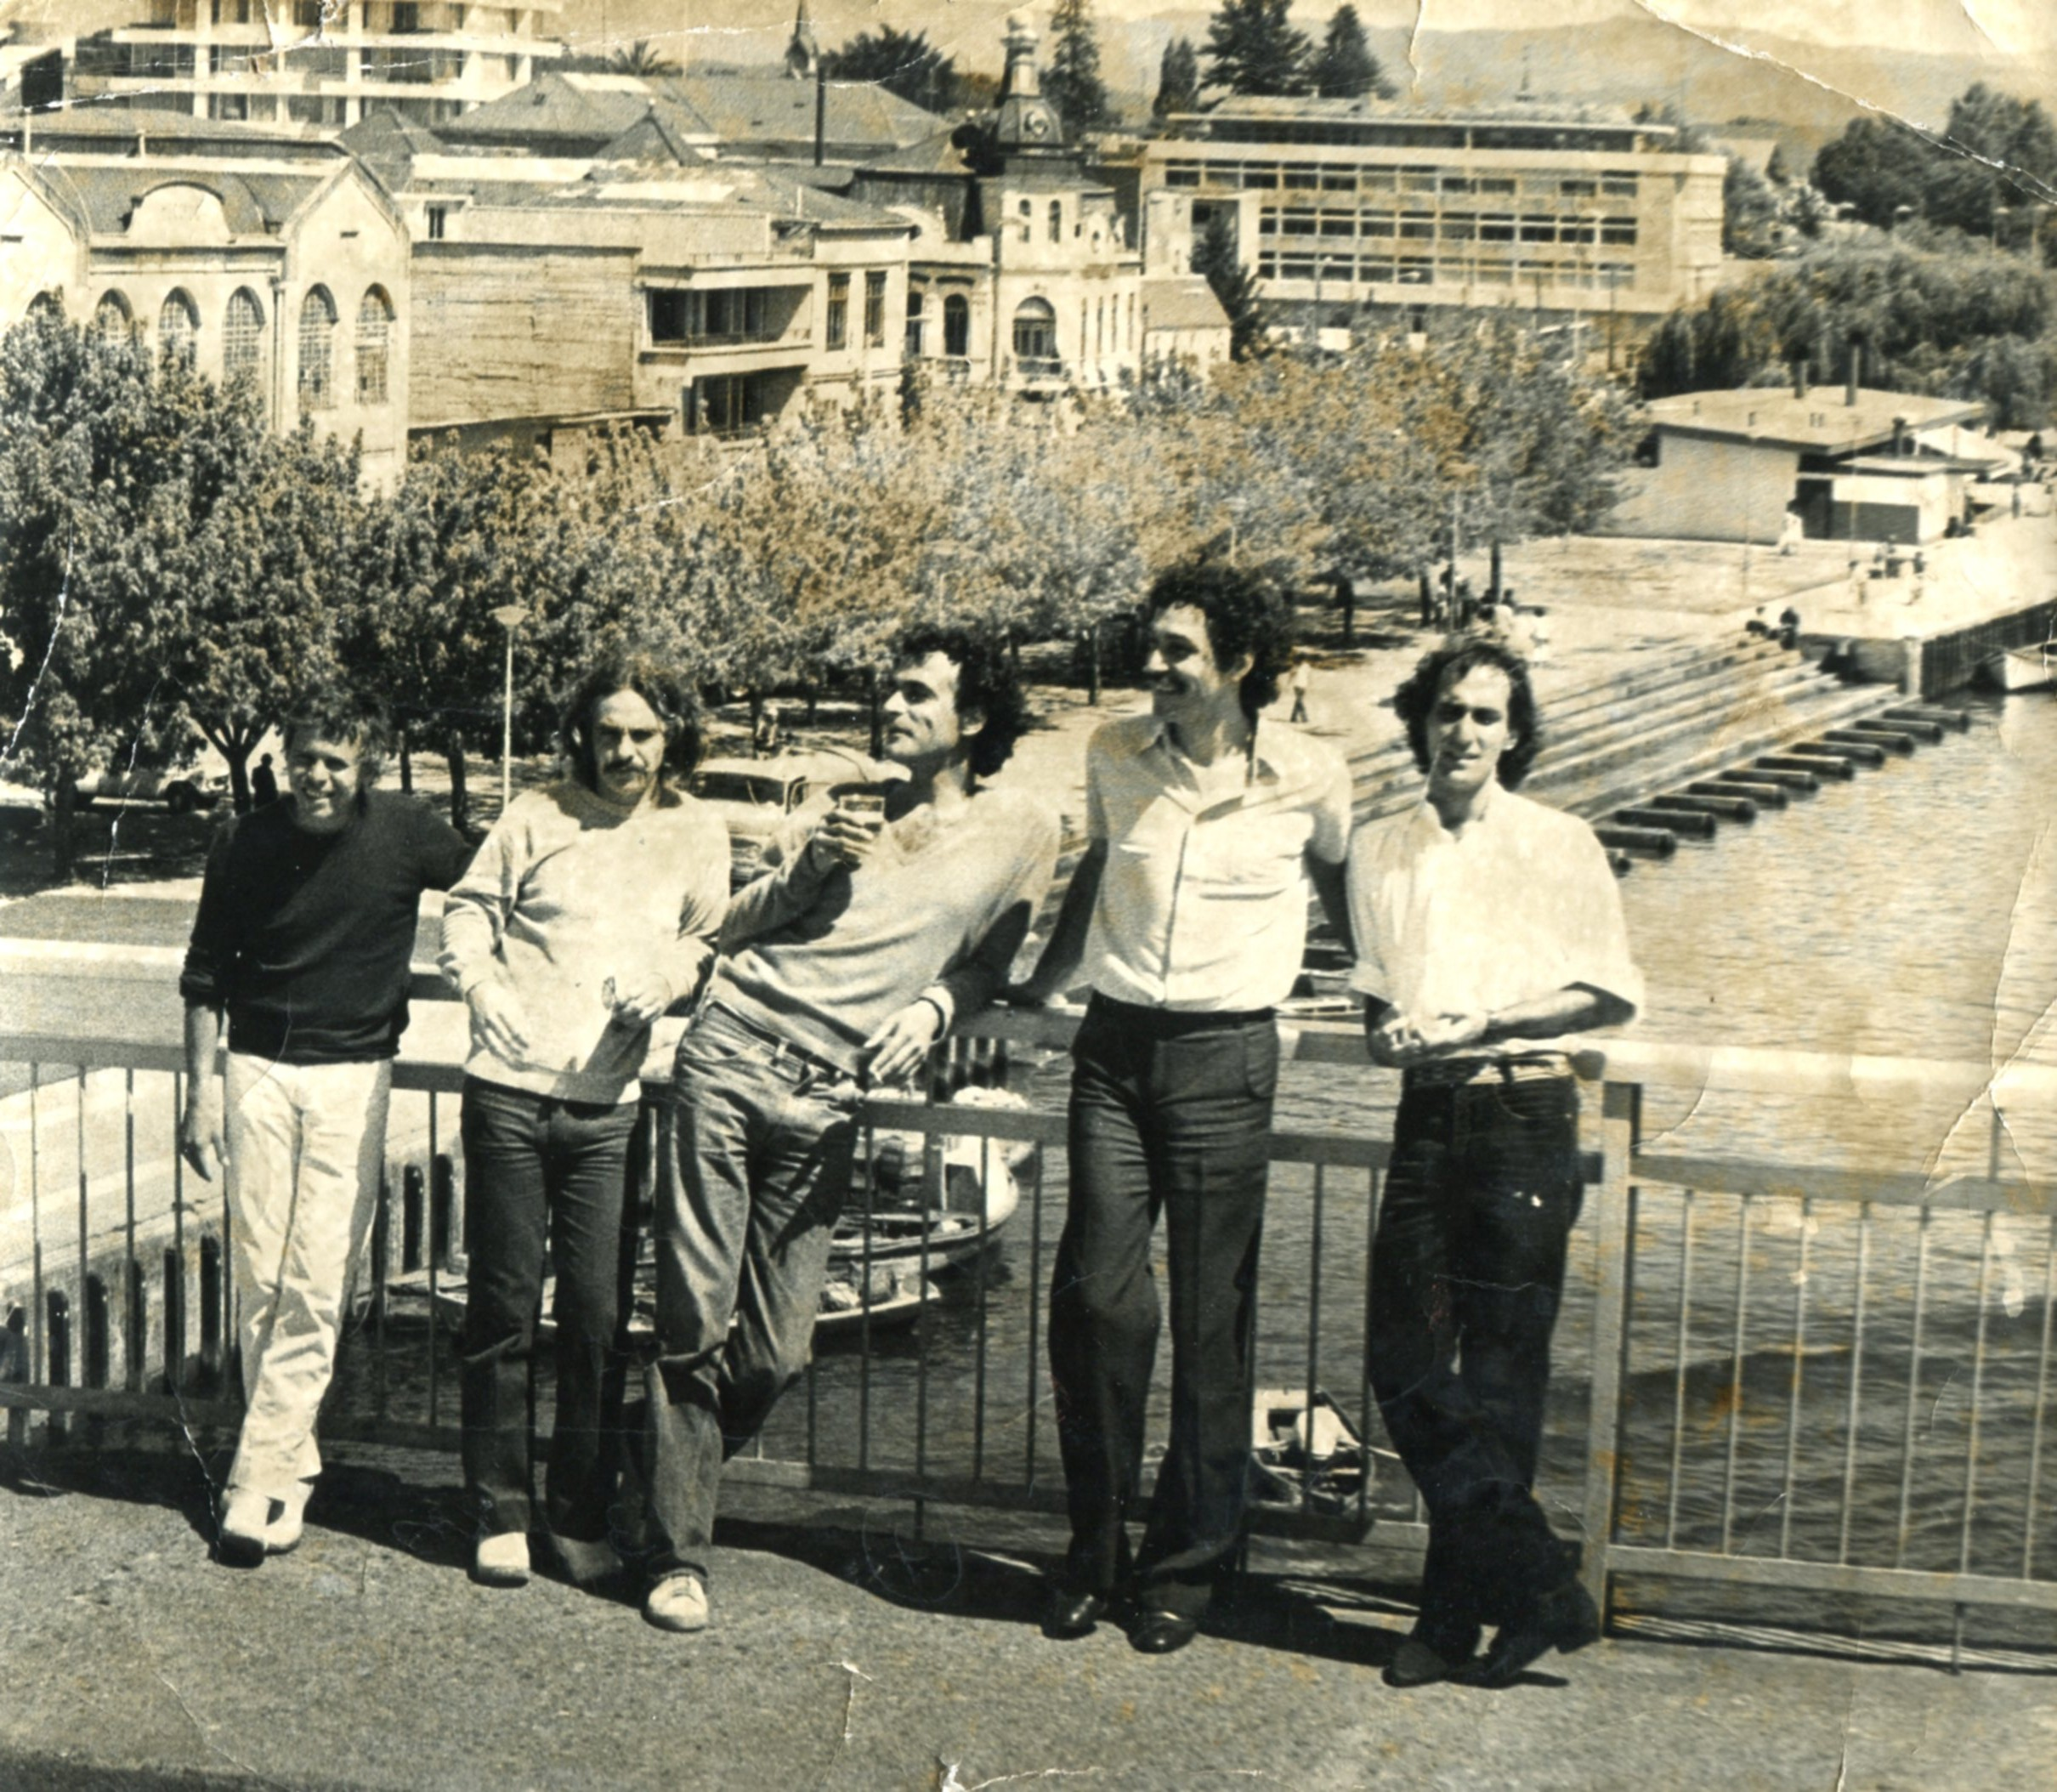 Enterreno - Fotos históricas de chile - fotos antiguas de Chile - Los Jaivas en Valdivia, 1979